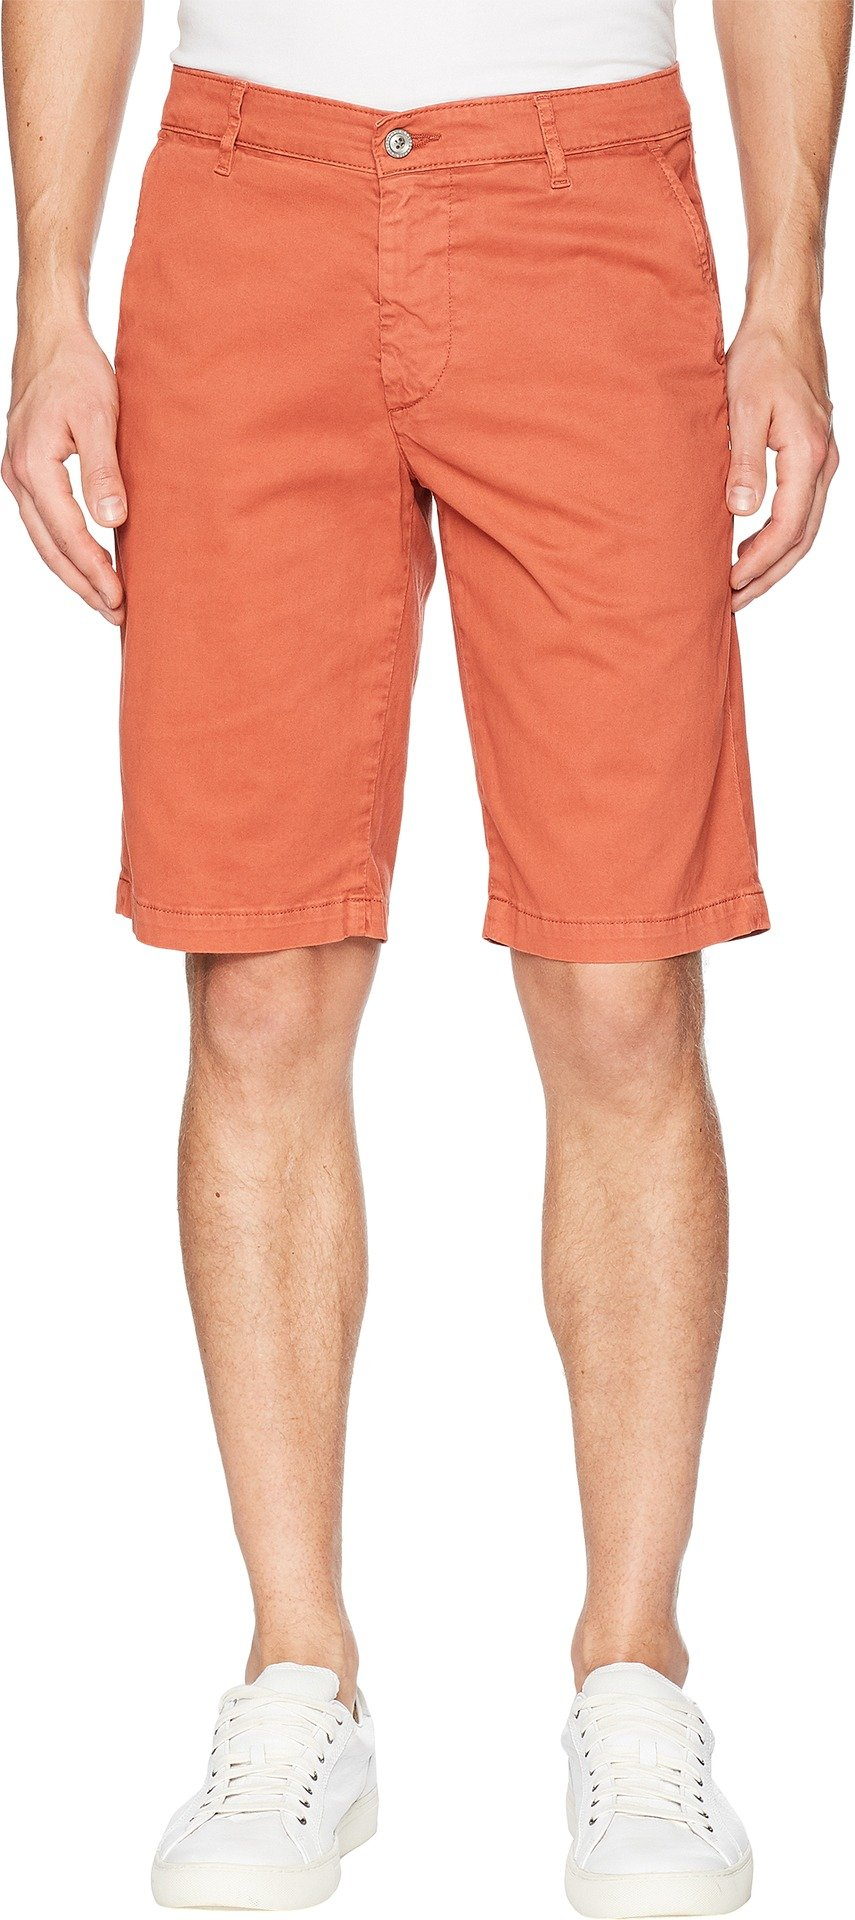 AG Adriano Goldschmied Men's Griffin Shorts in Sulfur Rosso Red Sulfur Rosso Red 36 11